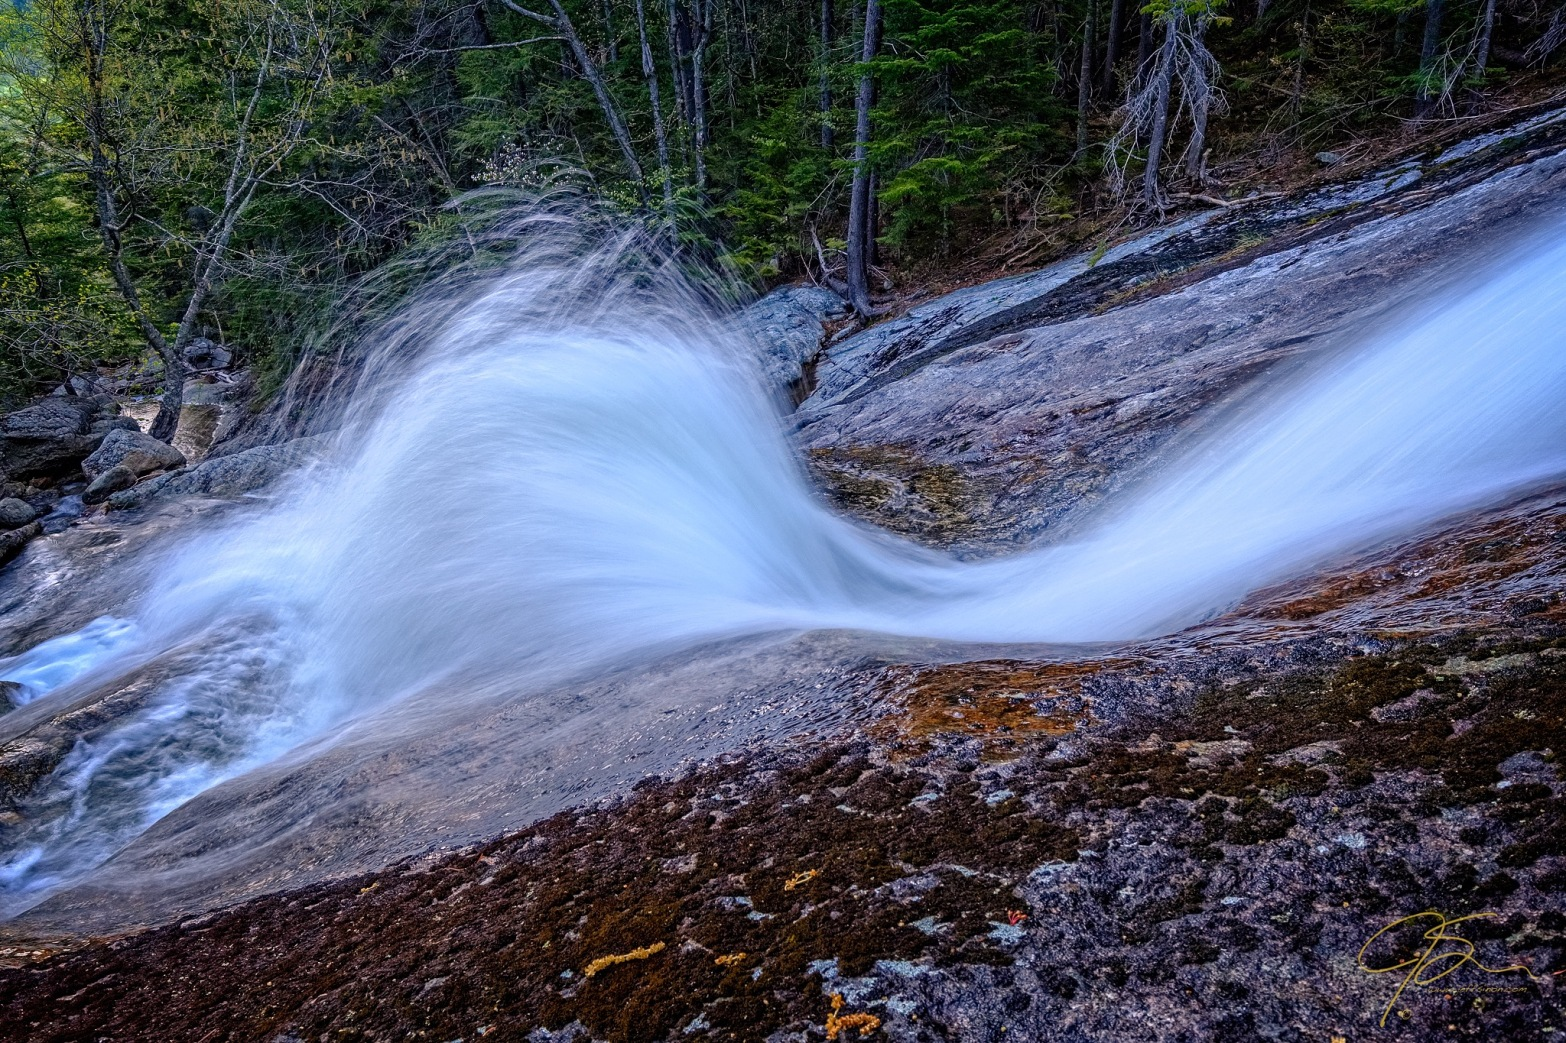 large fan of water splashing up at Thompson Falls